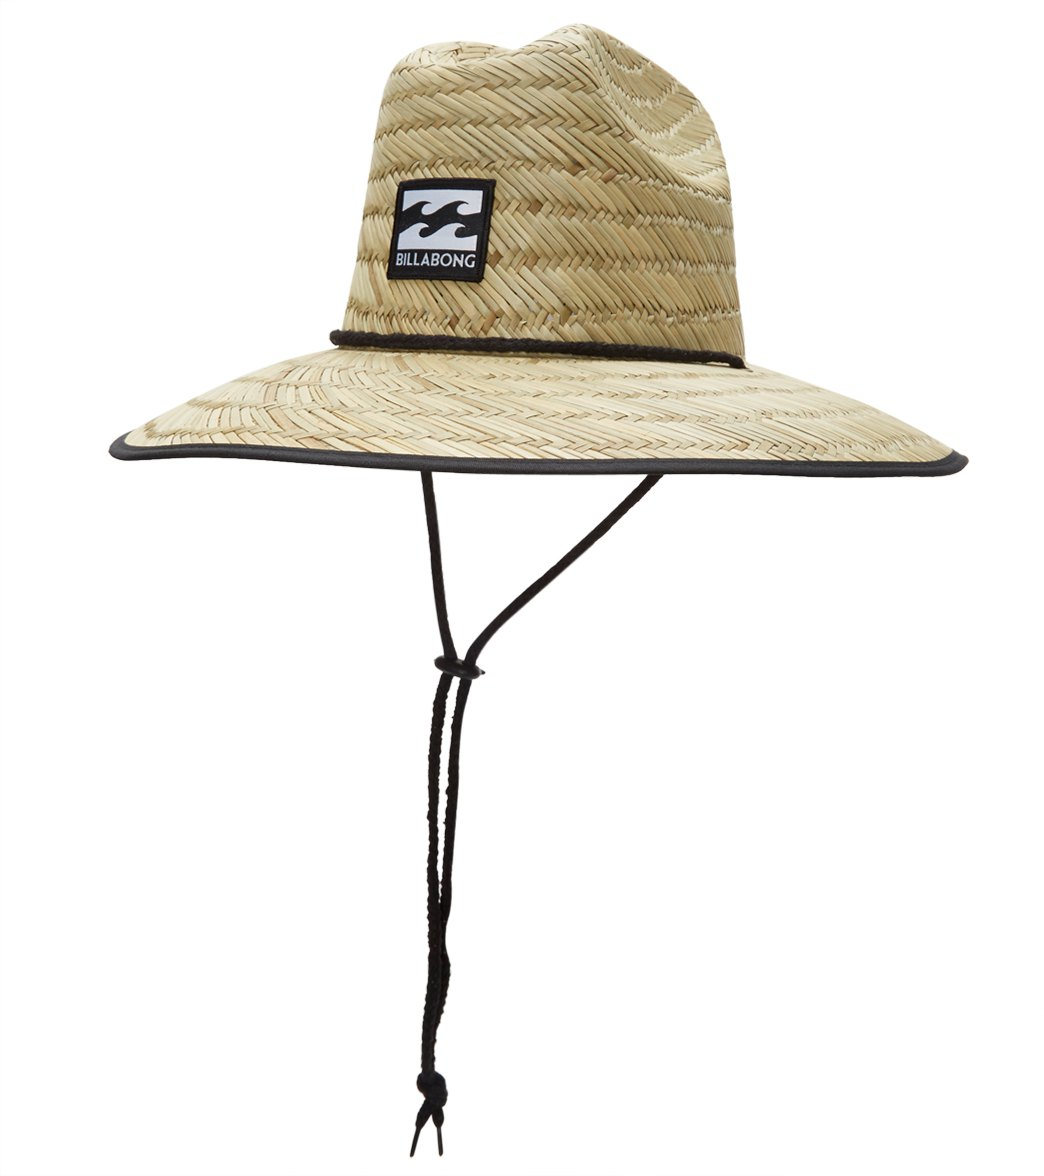 Billabong Tides Lifeguard Print Hat At Swimoutletcom